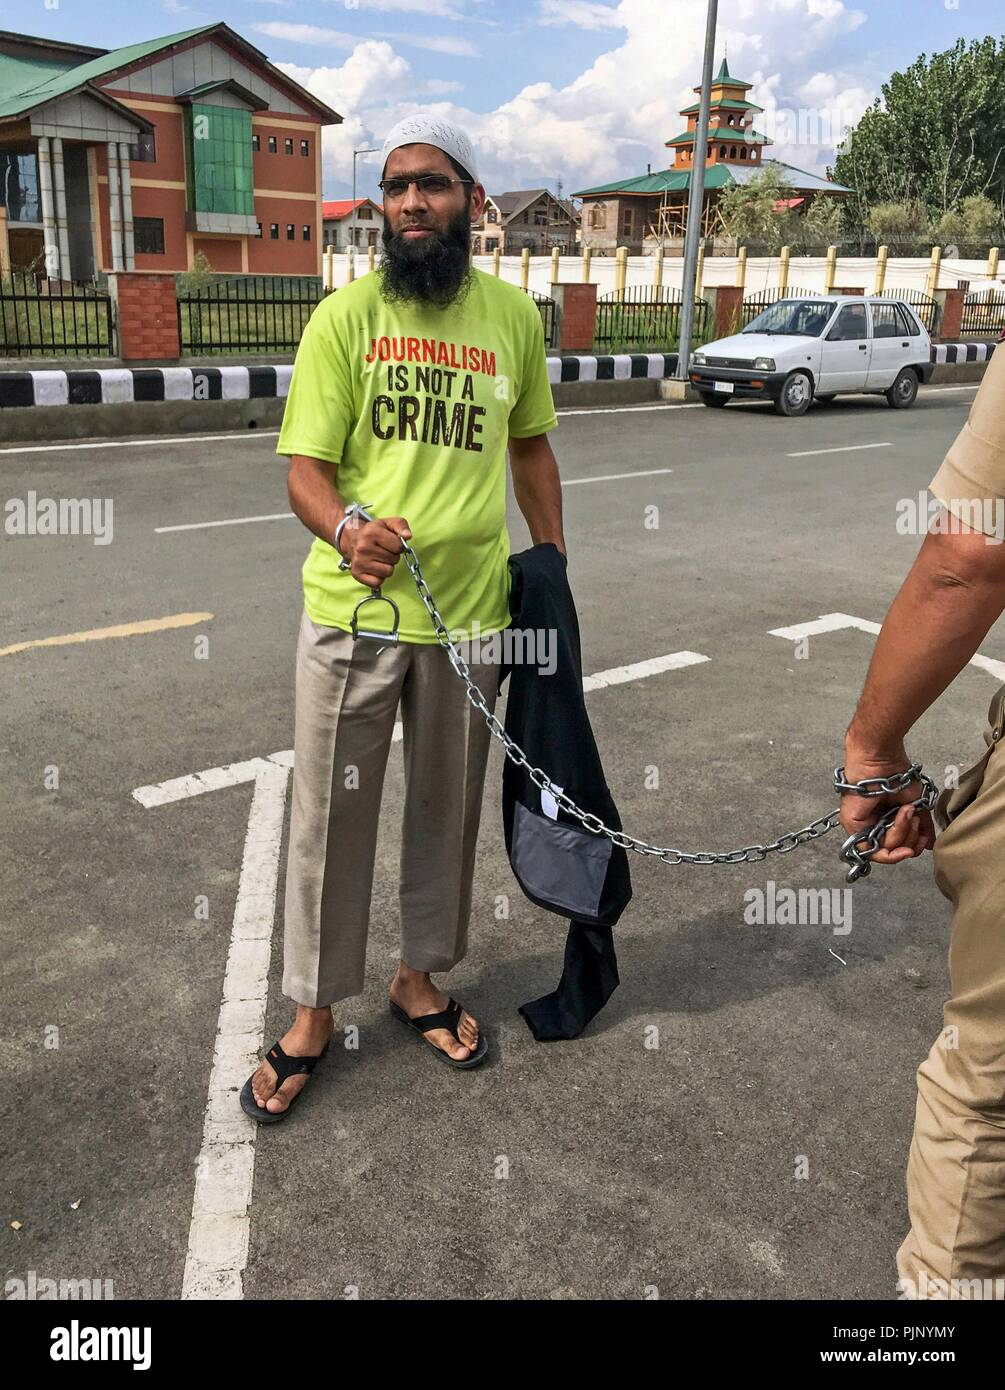 Srinagar, J&K, India. 8th Sept, 2018. - Aasif Sultan seen on handcuffs on his way to judicial custody.Aasif Sultan, a local journalist and Assistant Editor of Kashmir Narrator magazine was arrested by the government forces and now being sent to Central Jail in judicial custody until Sept 22. He was arrested after a six-day detention at a police station in Batmaloo area of Srinagar.Several journalists' bodies including Reporters without Borders and International Federation of Journalists have called for his immediate release. Credit: Saqib Majeed/SOPA Images/ZUMA Wire/Alamy Live News - Stock Image